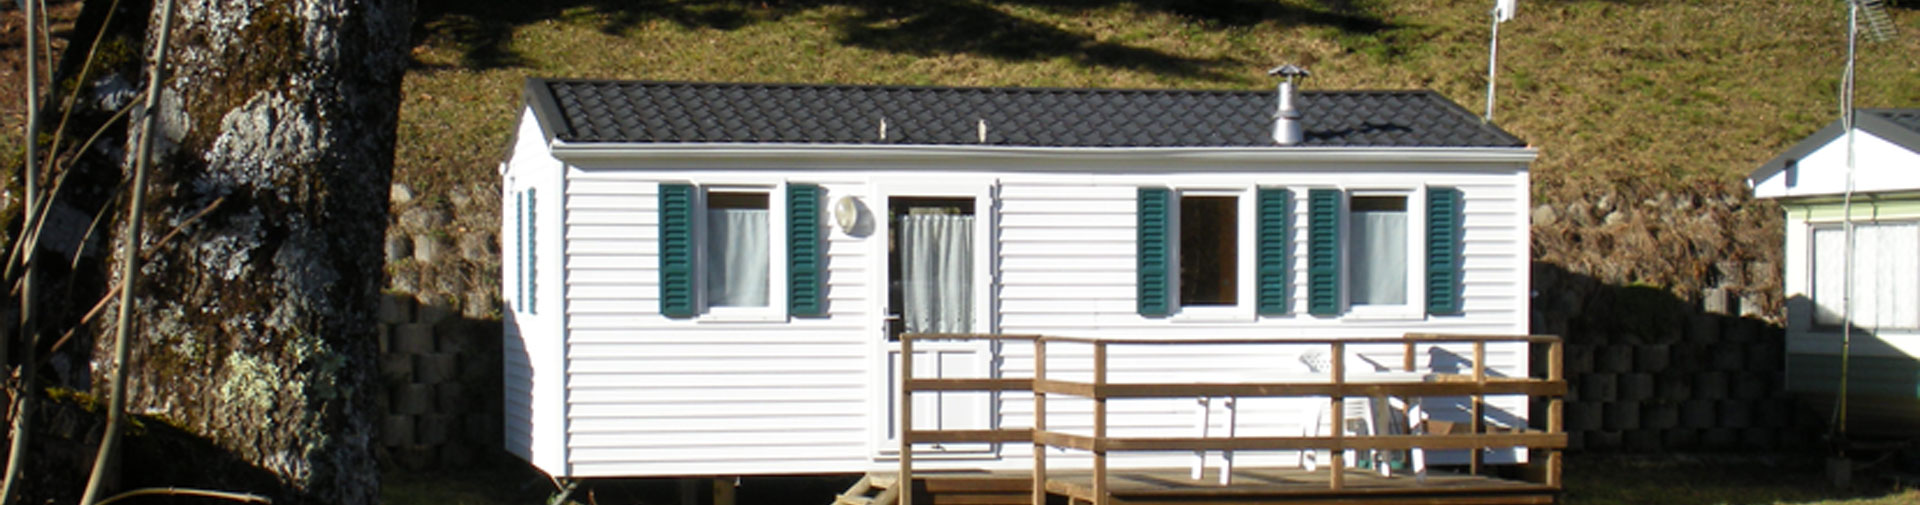 mobil home ohara 2 chambres 4 5 personnes camping oree des monts hautes pyrenees